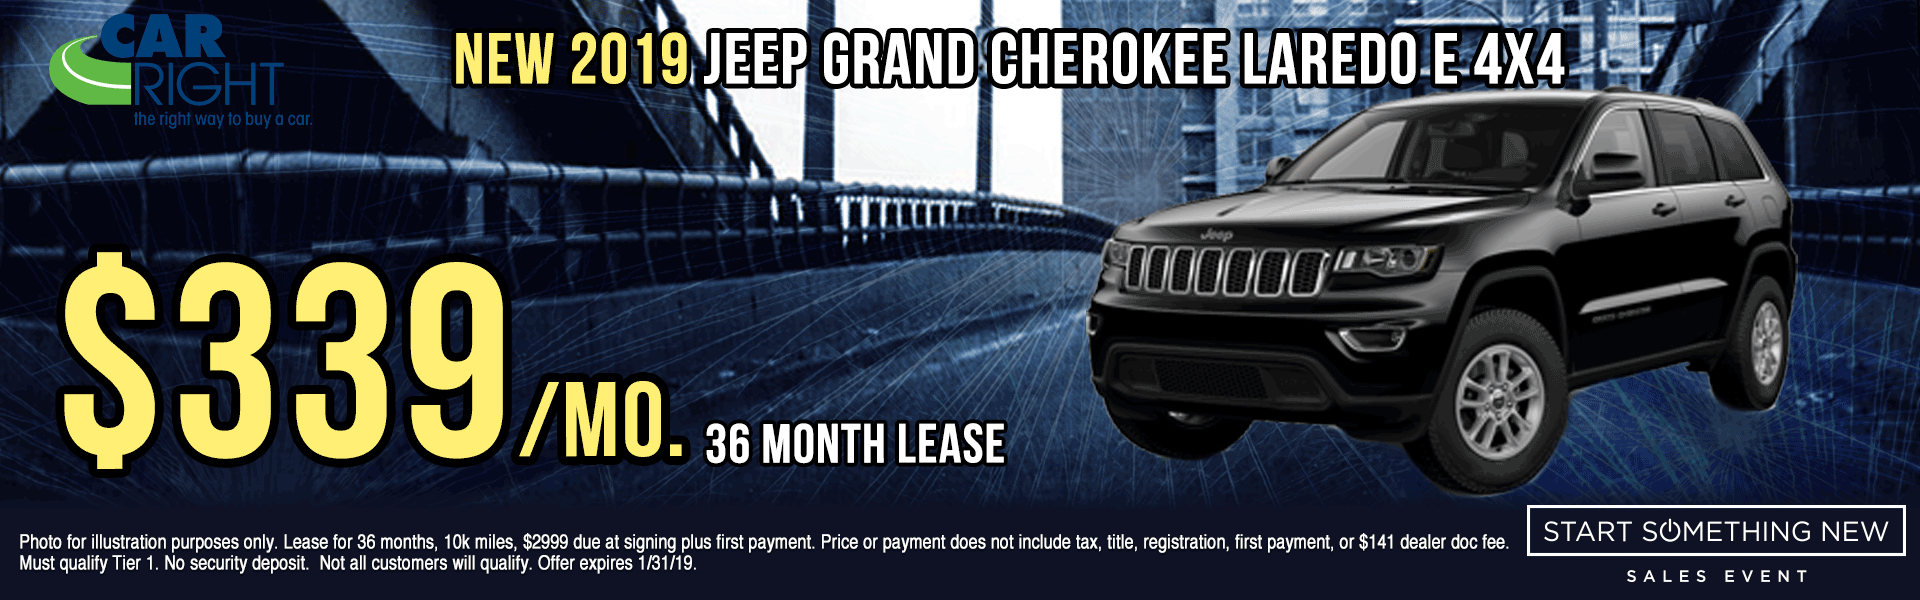 G3392---2019-JEEP-GRAND-CHEROKEE-LAREDO-E-4X4 chrysler specials dodge specials jeep specials ram specials lease specials retail specials incentives shop now start something new sales event new vehicle specials carright specials